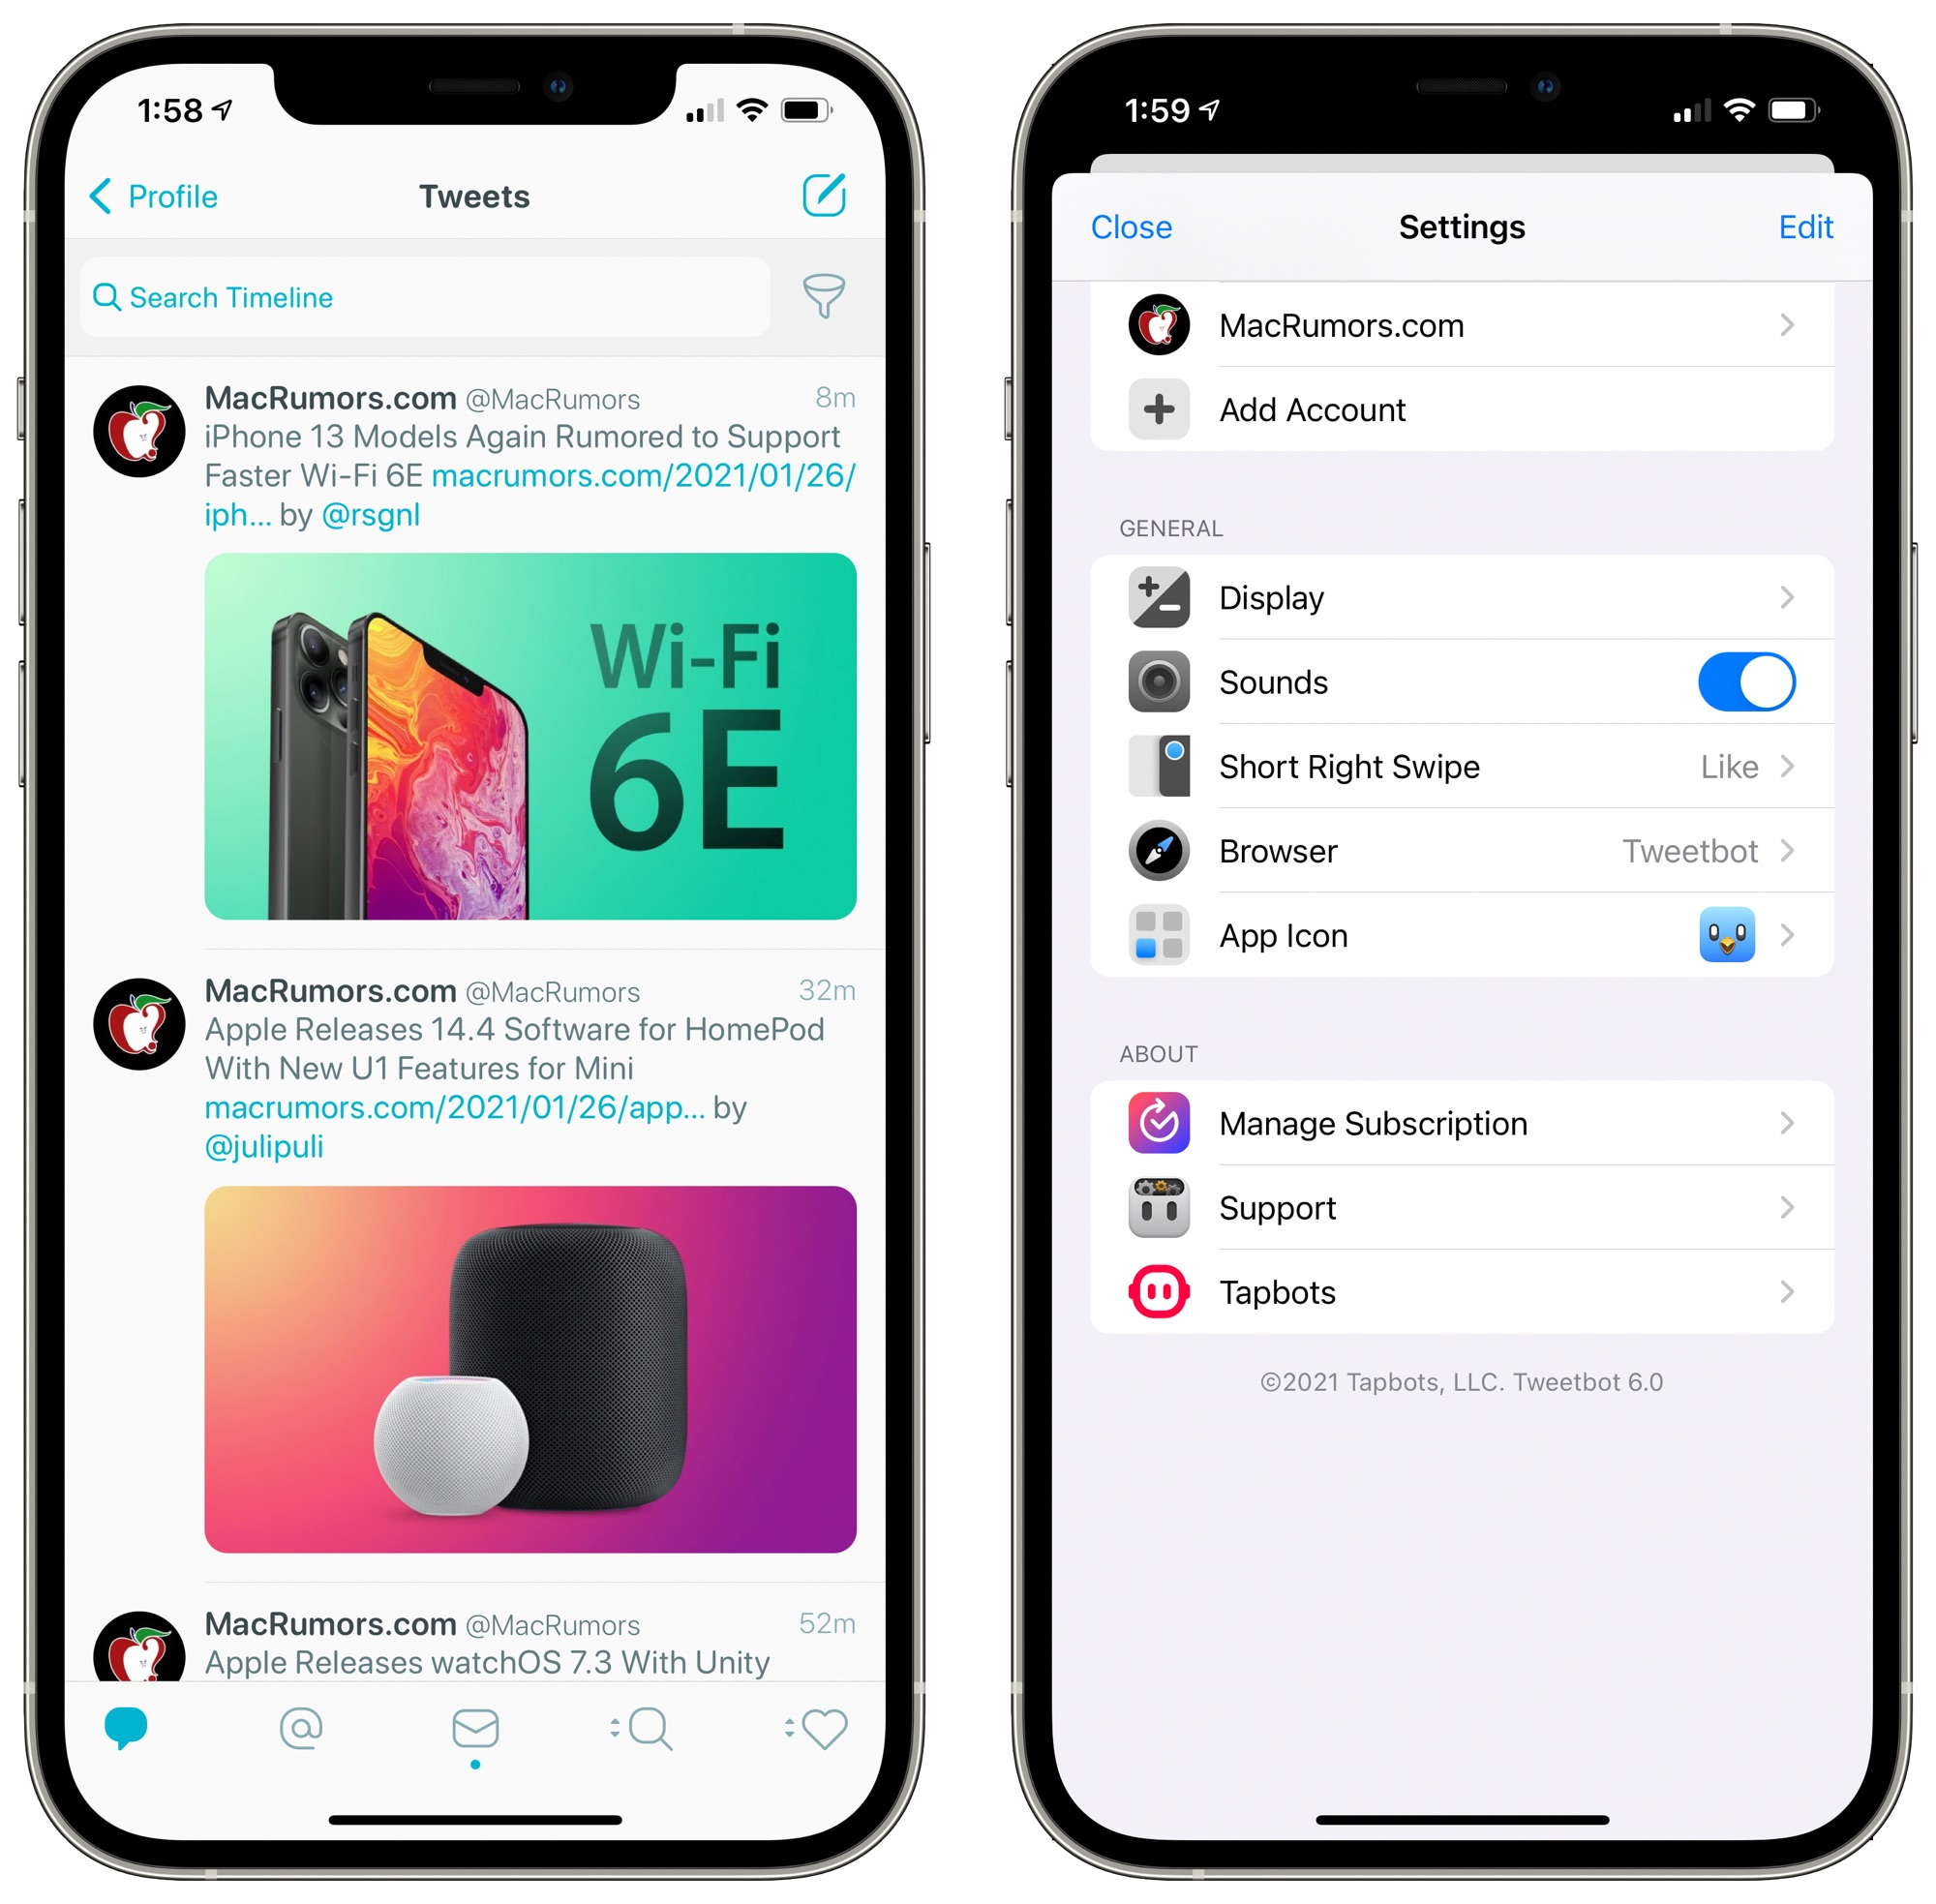 Tweetbot 6 Launches With Design Updates and Subscription Pricing